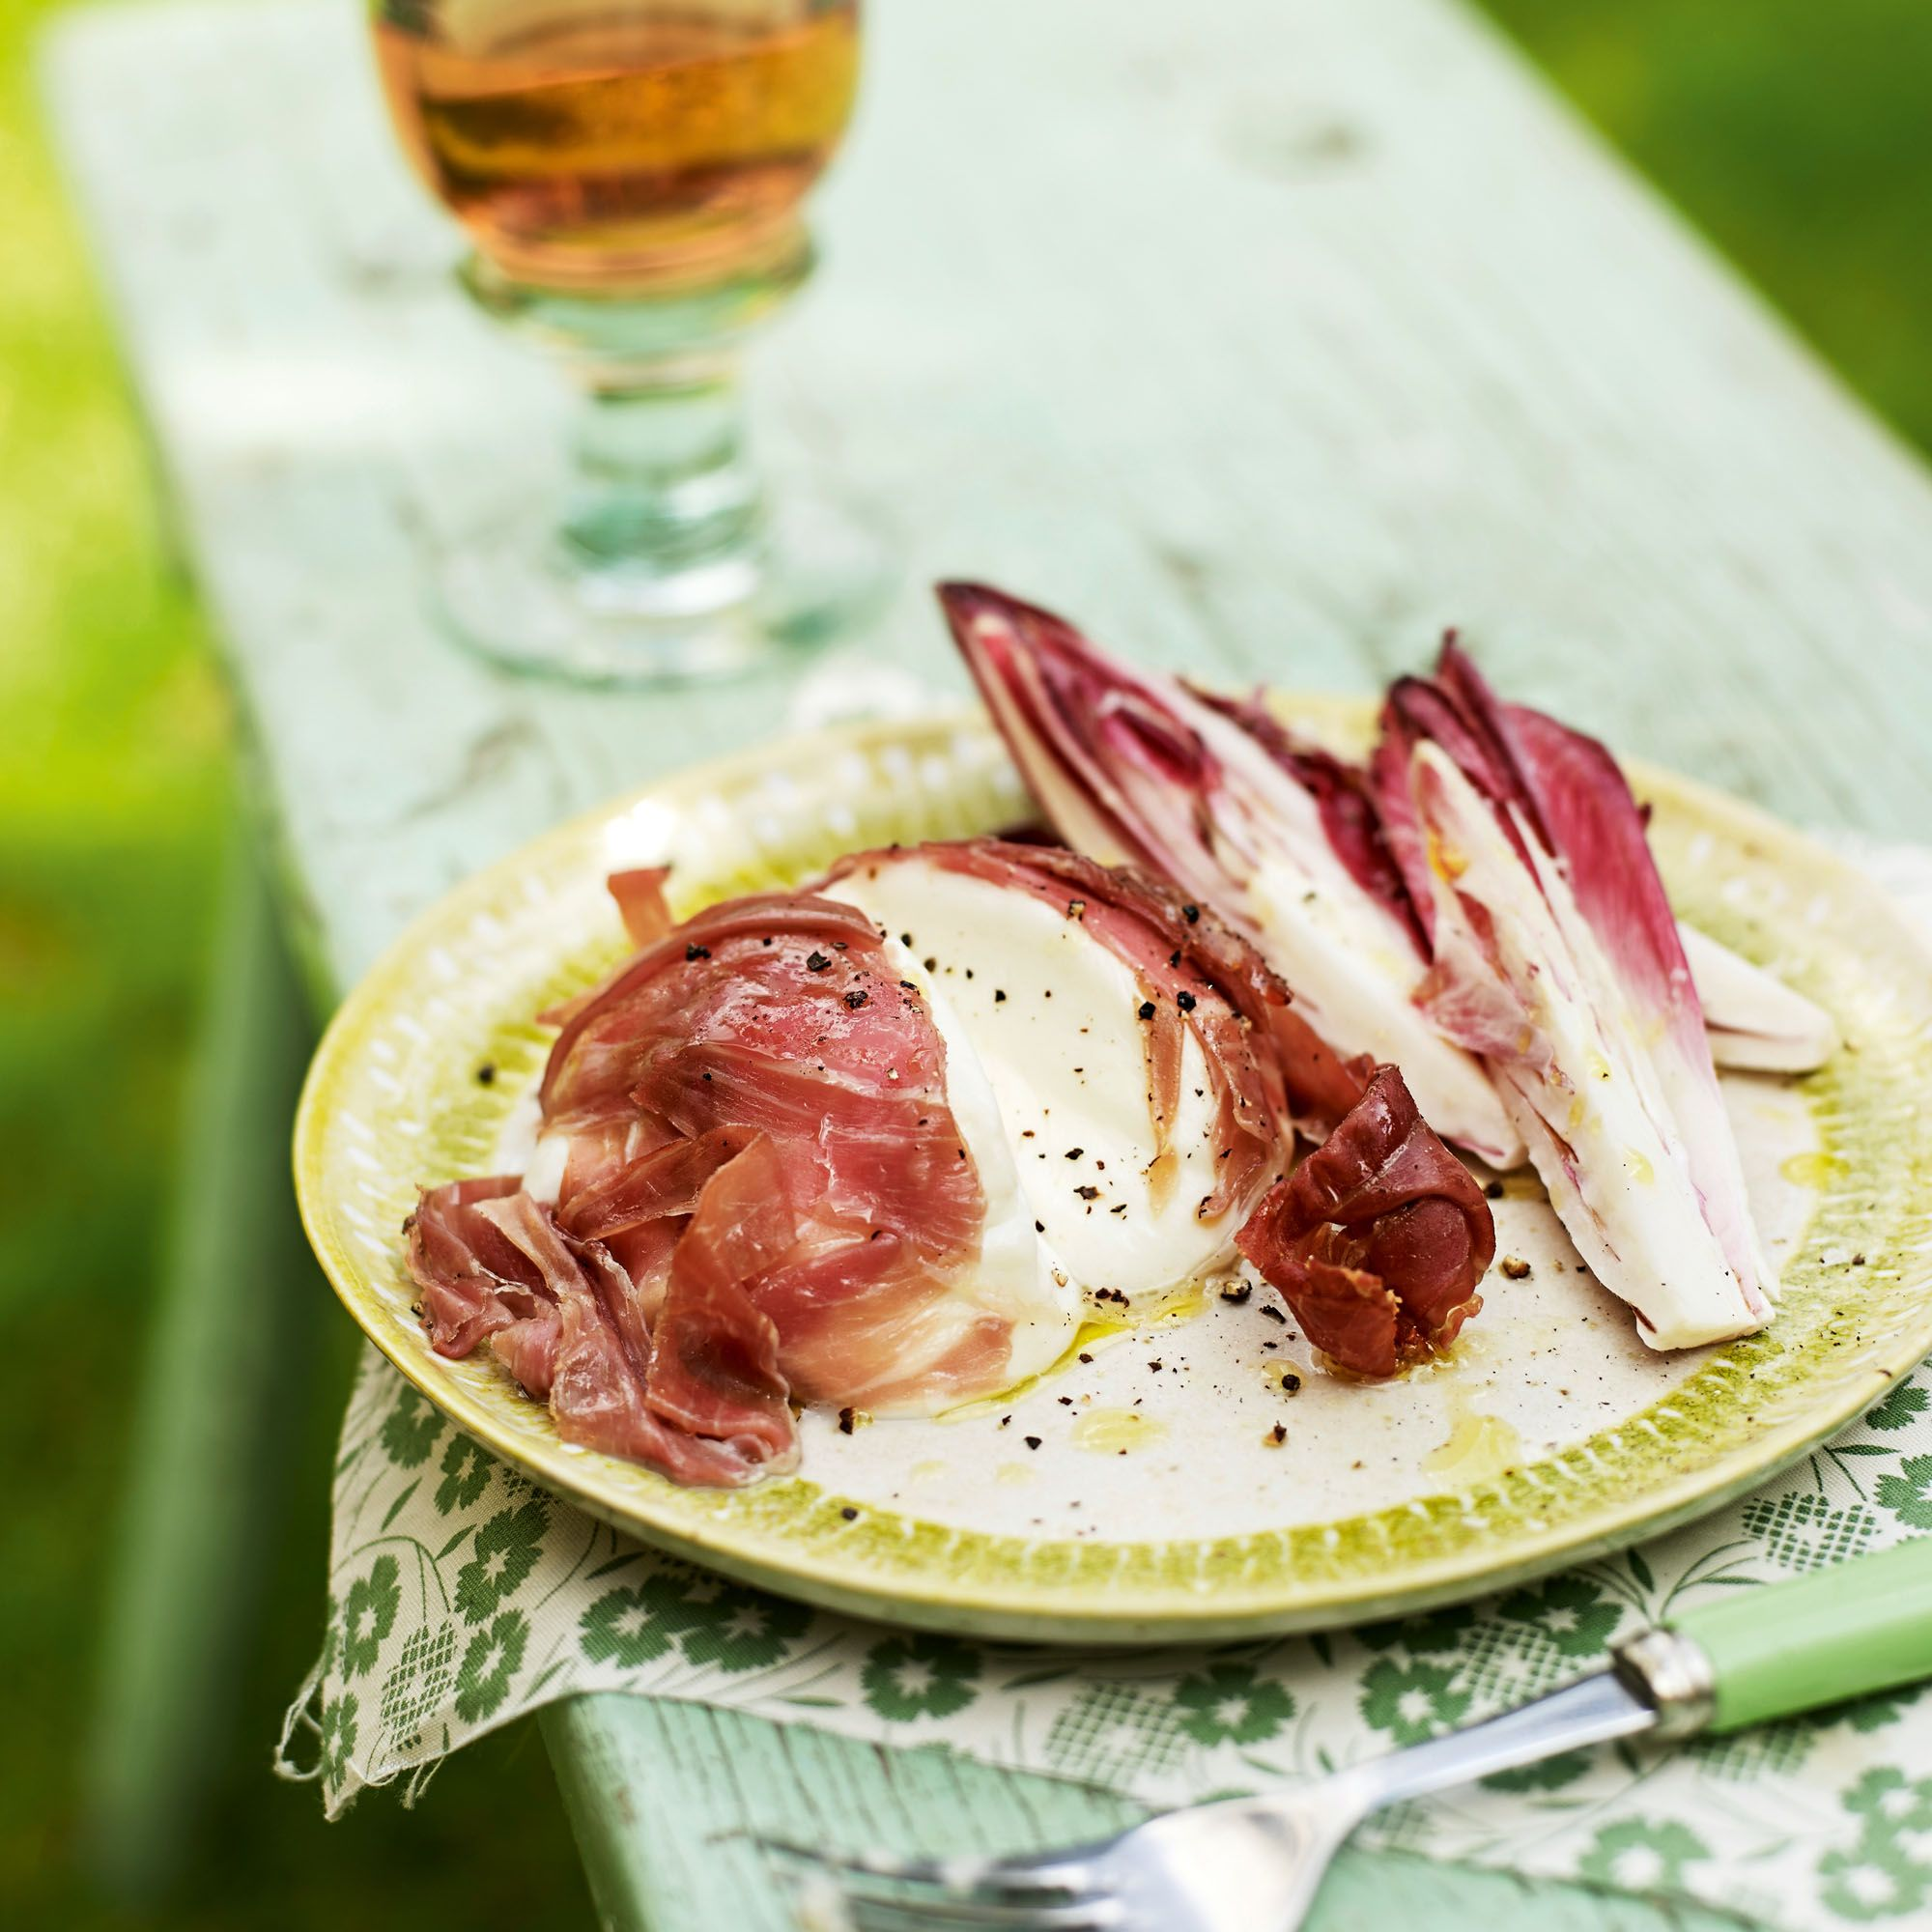 Easy Dinner Party Starter Ideas Part - 29: Baked Mozzarella With Prosciutto. Dinner Party RecipesDinner ...